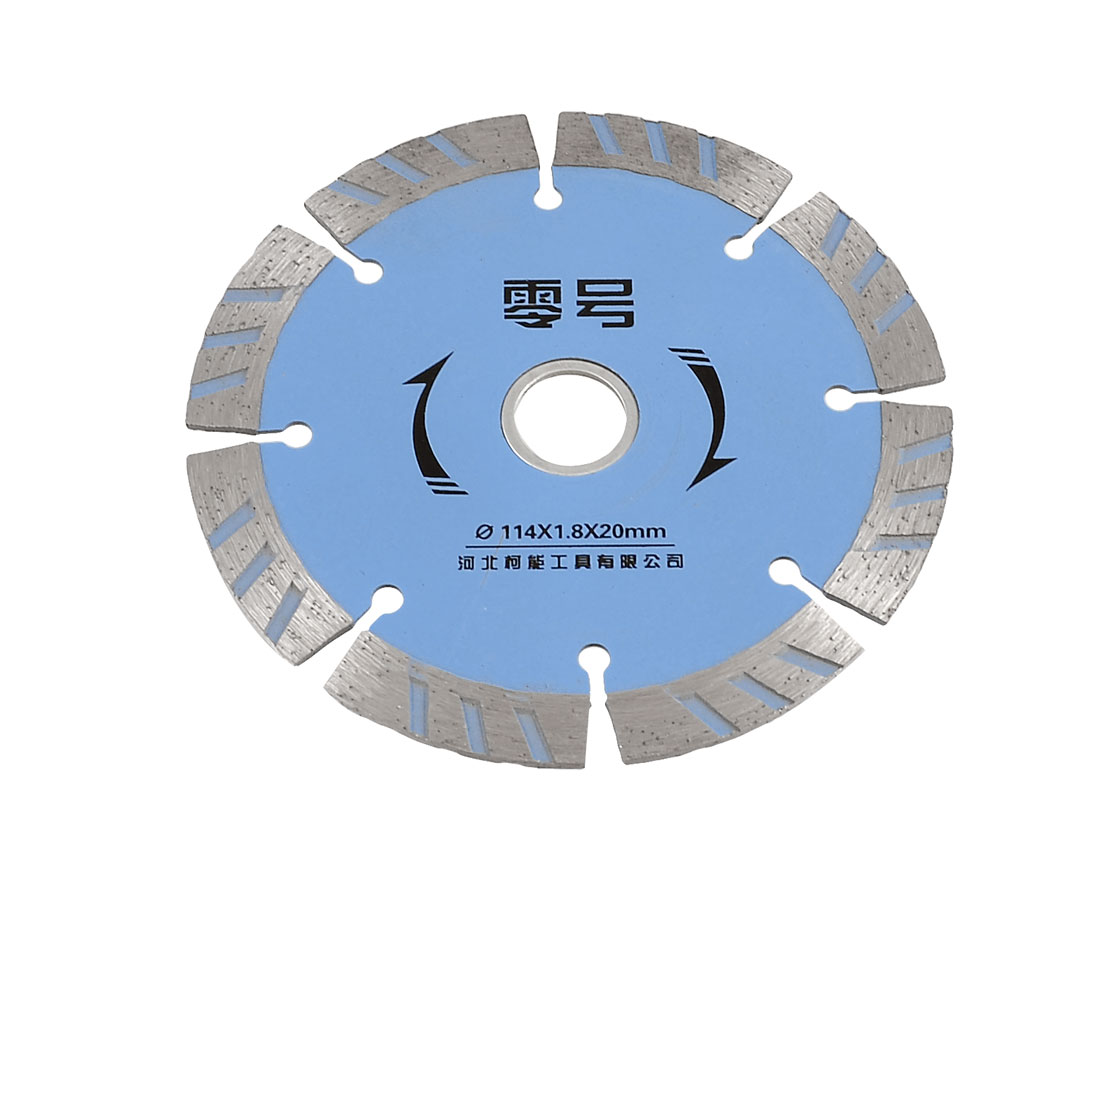 Stone-Tile-Grinding-114-x-1-8-x-20mm-Metal-Wheel-Diamond-Disc